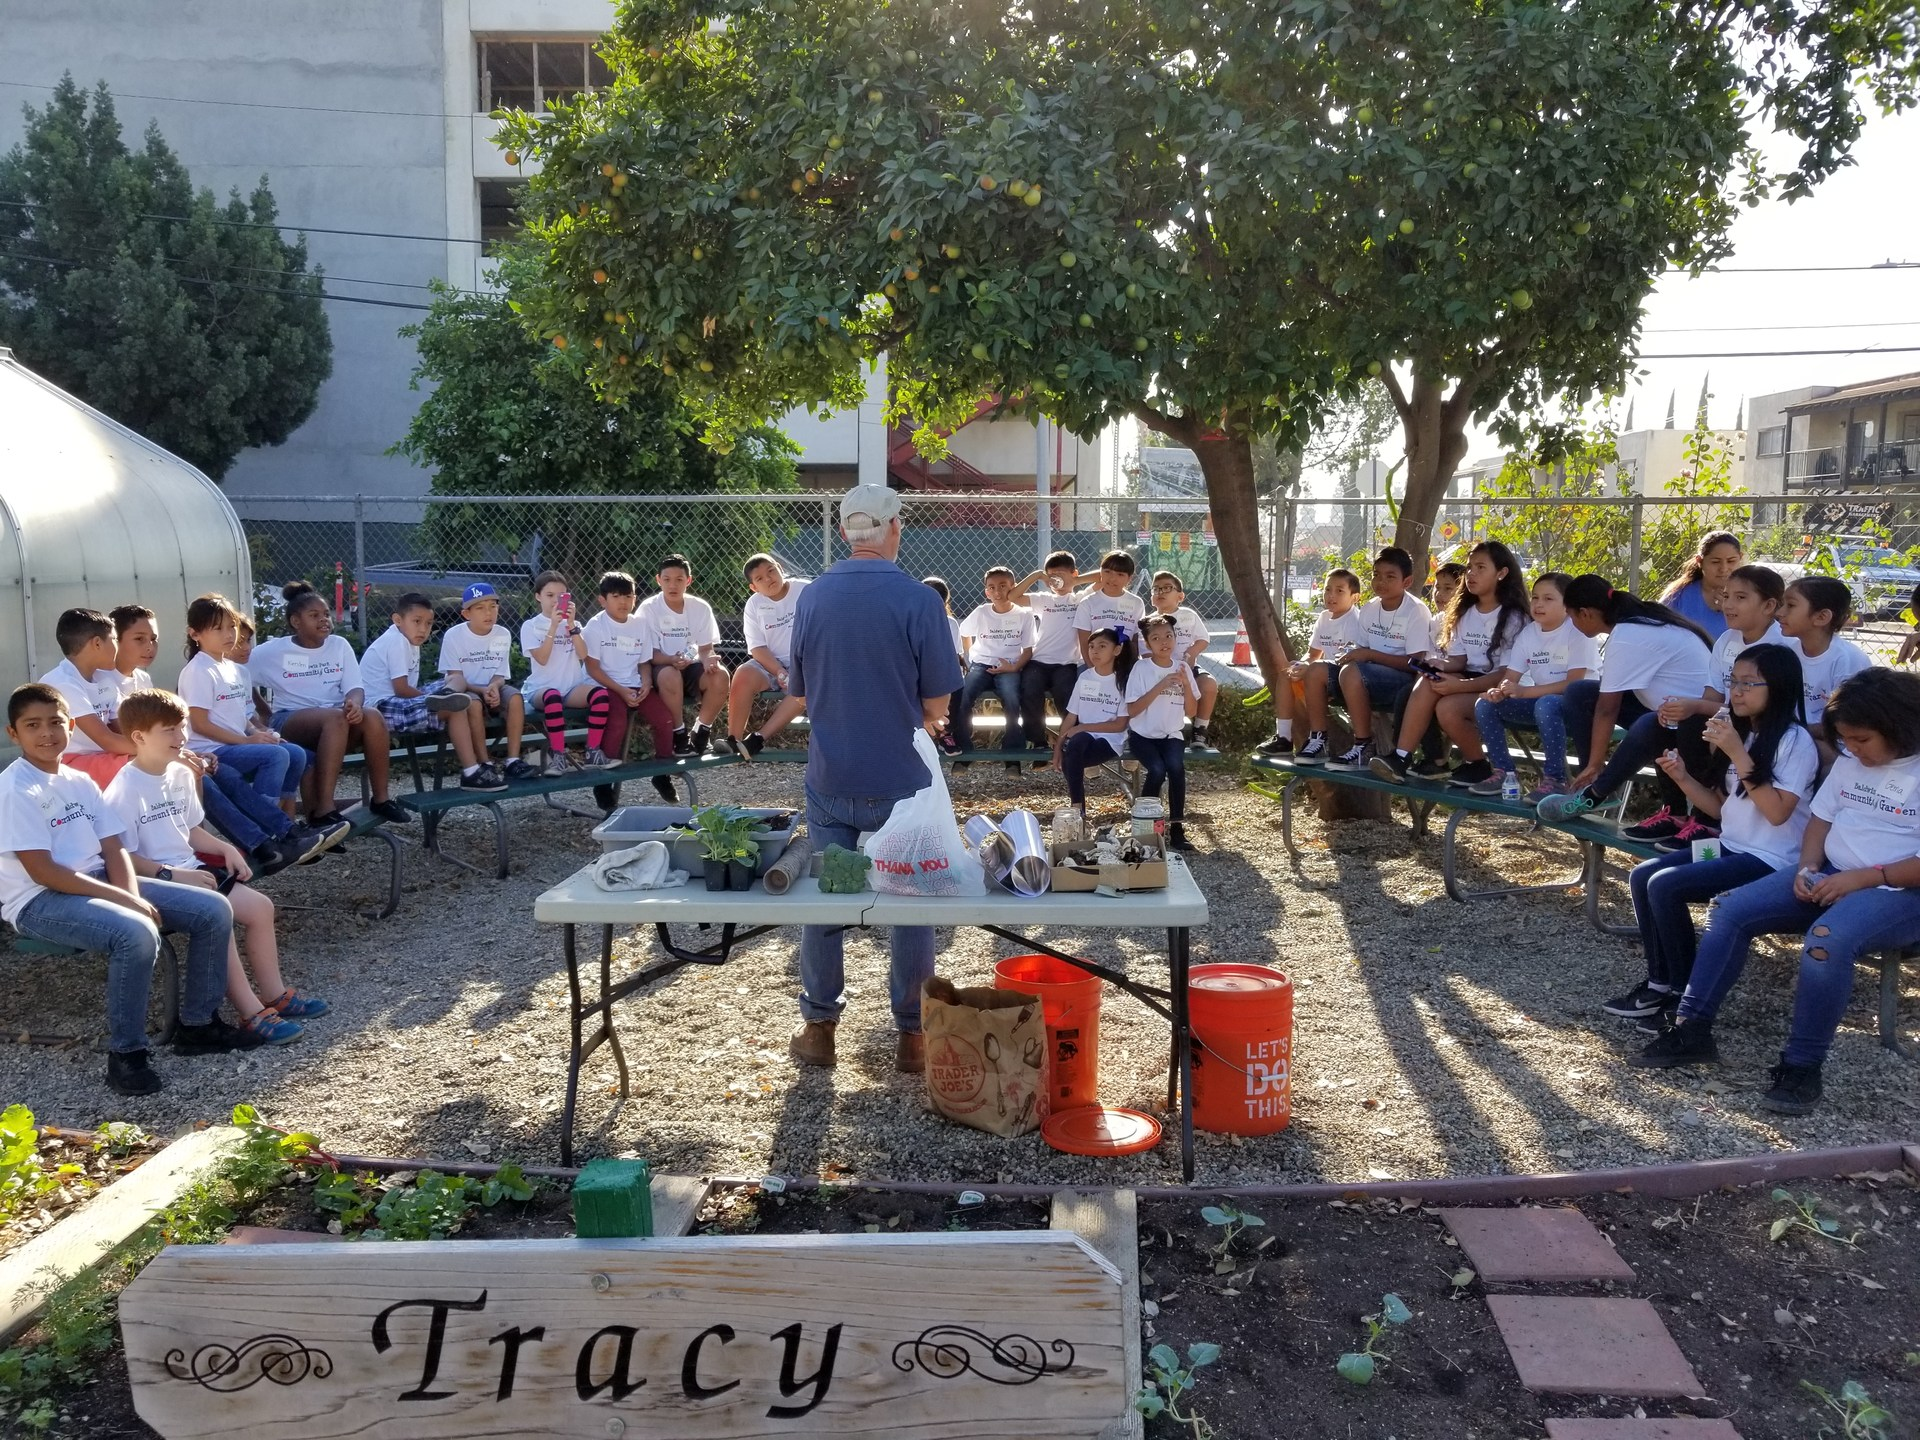 Fourth-graders from De Anza Elementary School listen to a talk about planting and tending fruits and vegetables on Oct. 27 as part of the District's Nutrition in the Garden program. The yearlong program teaches students about food preparation and healthy nutrition.